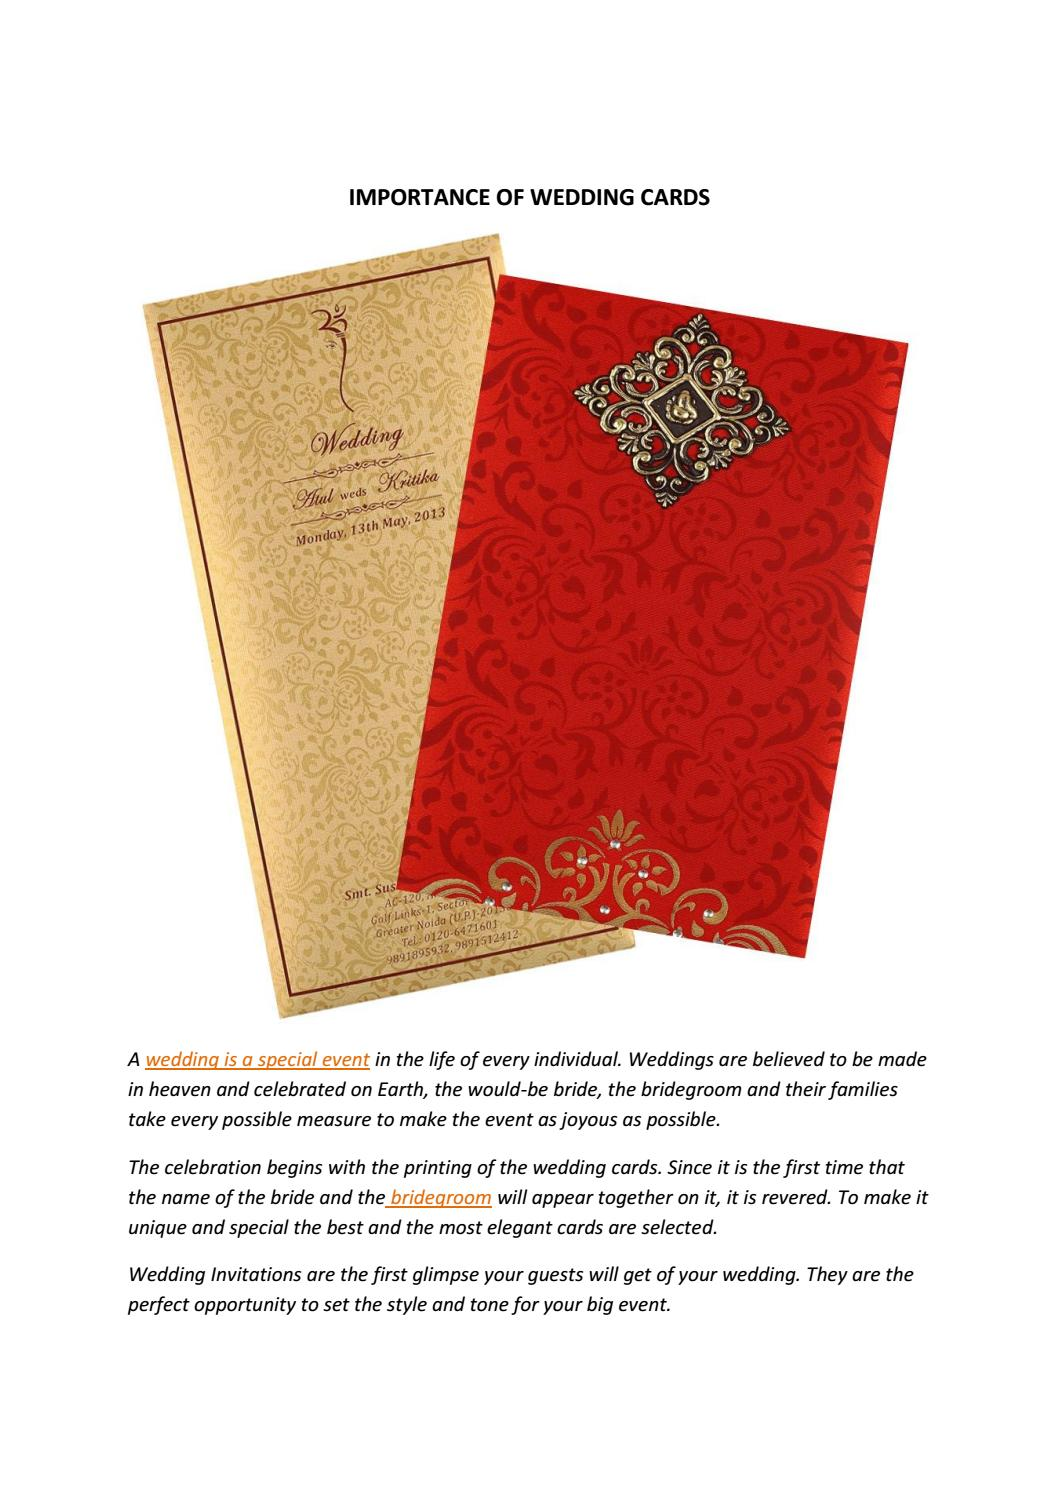 Importance of wedding cards by weddingcards - issuu